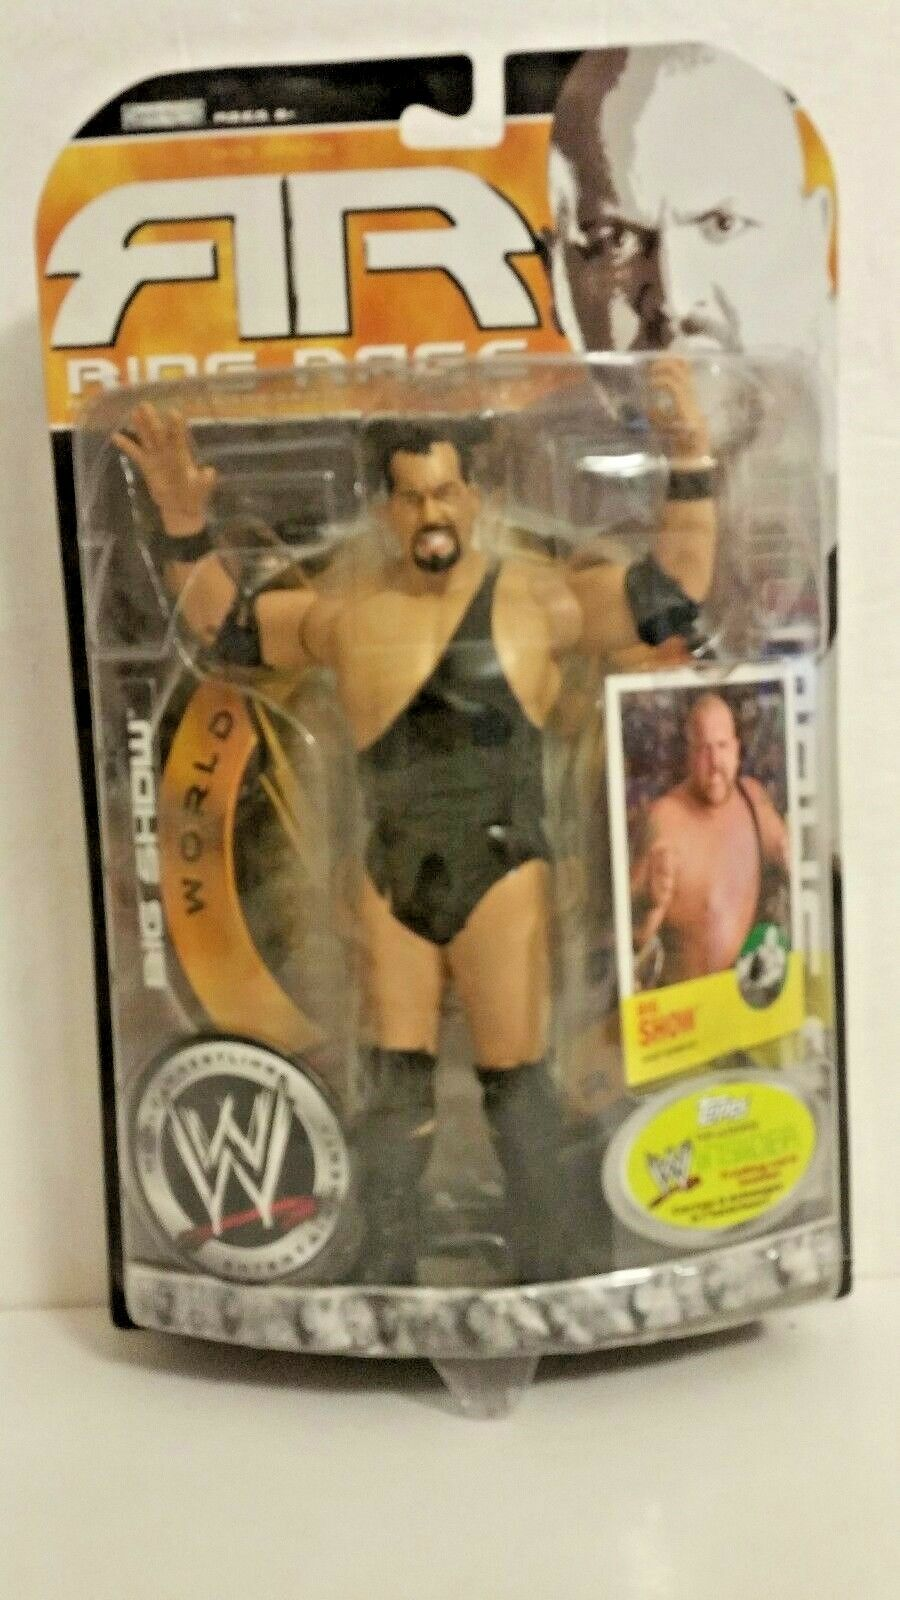 WWE RING RAGE BIG SHOW ACTION FIGURE(086)